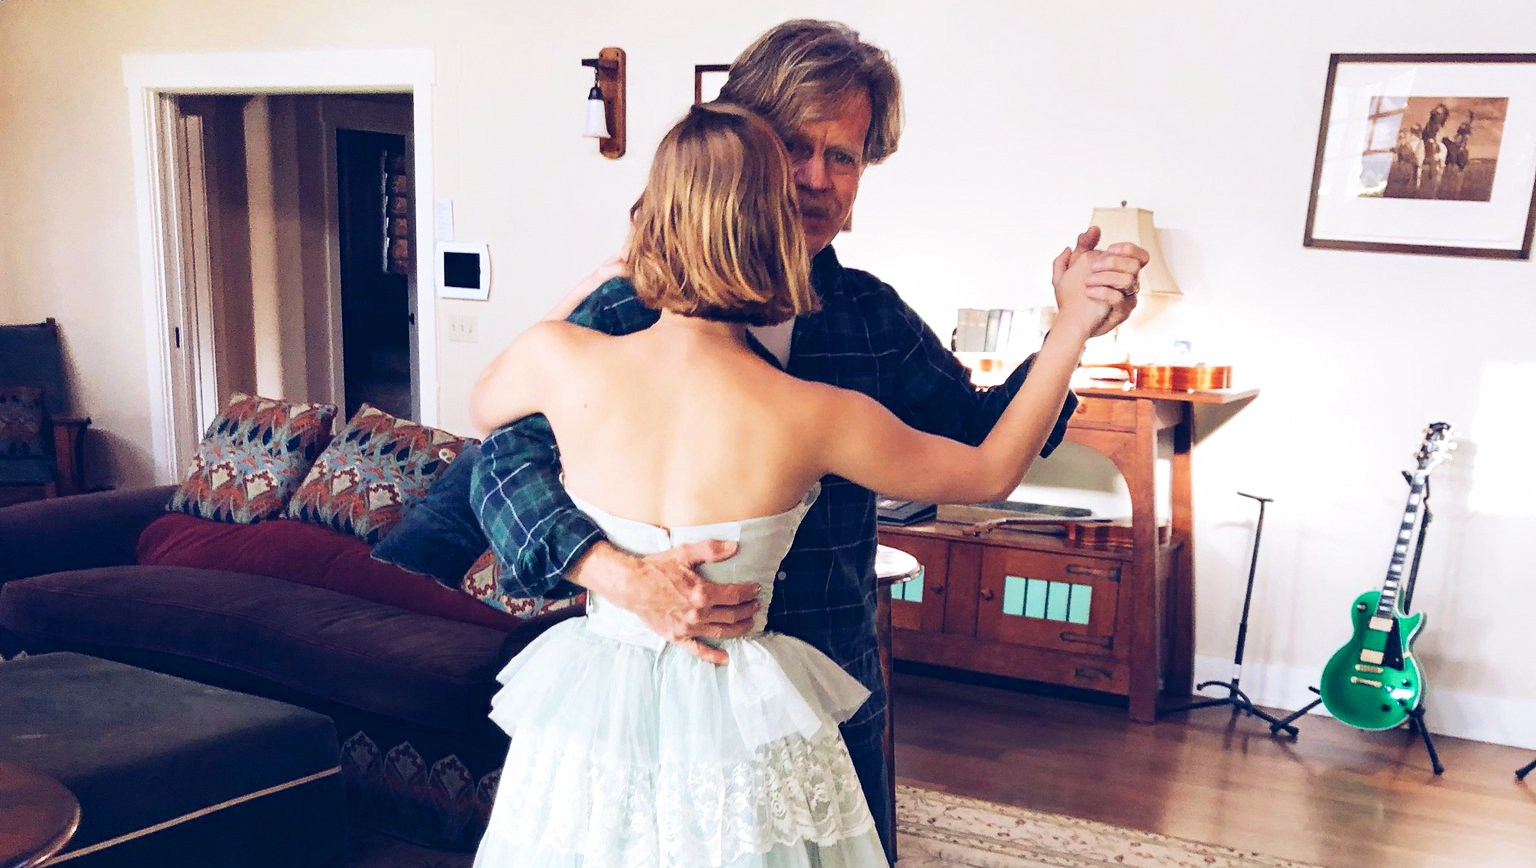 William H. Macy Daughter Prom Twitter